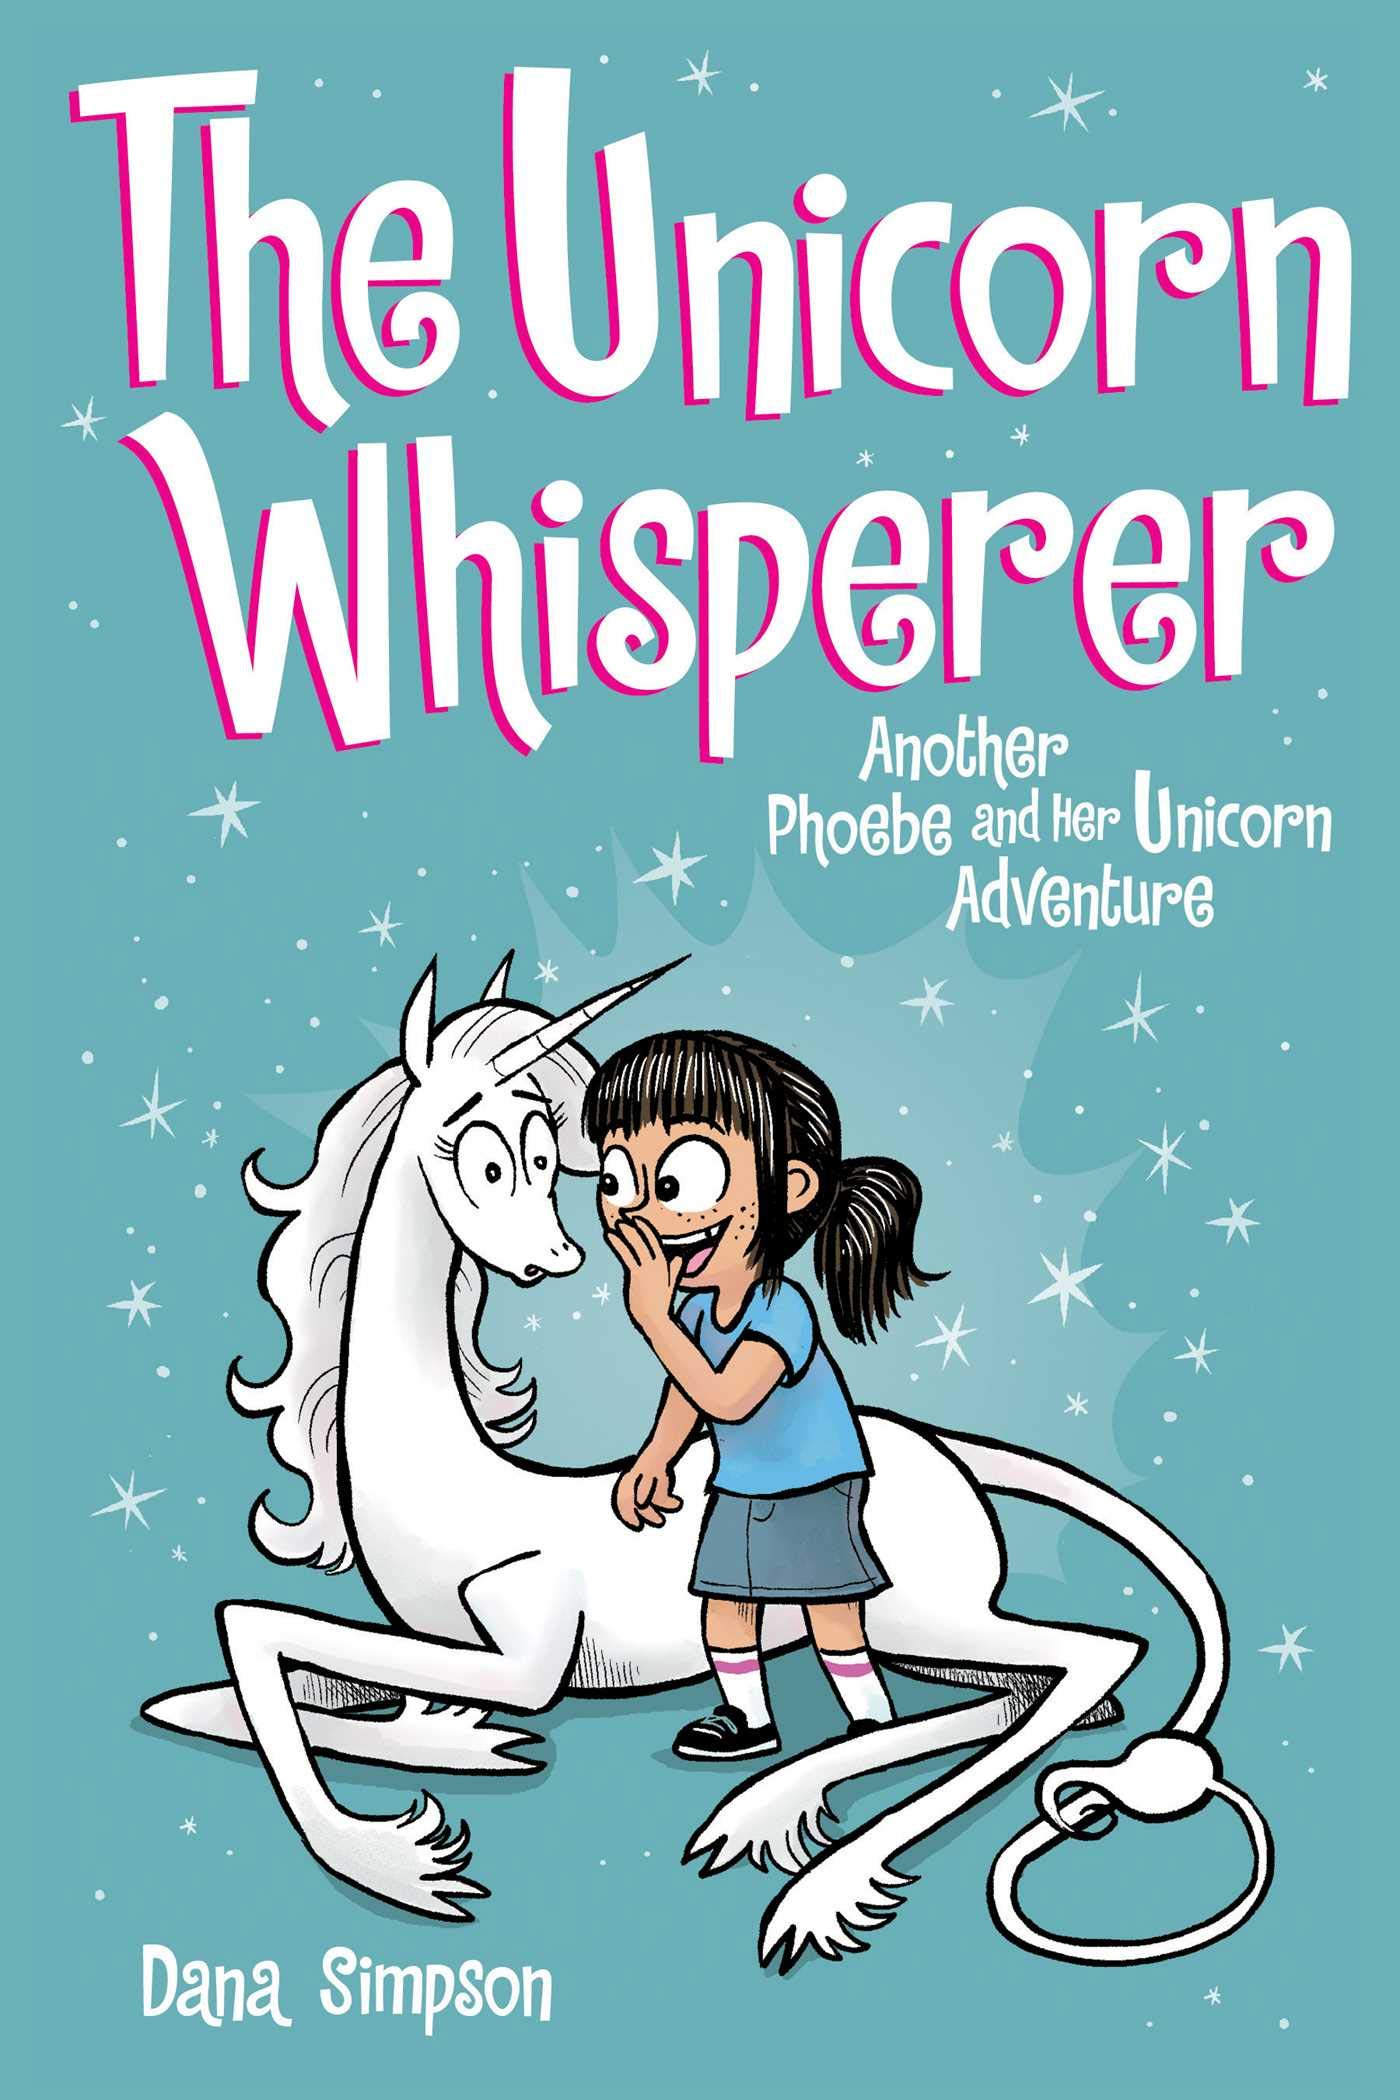 The Unicorn Whisperer